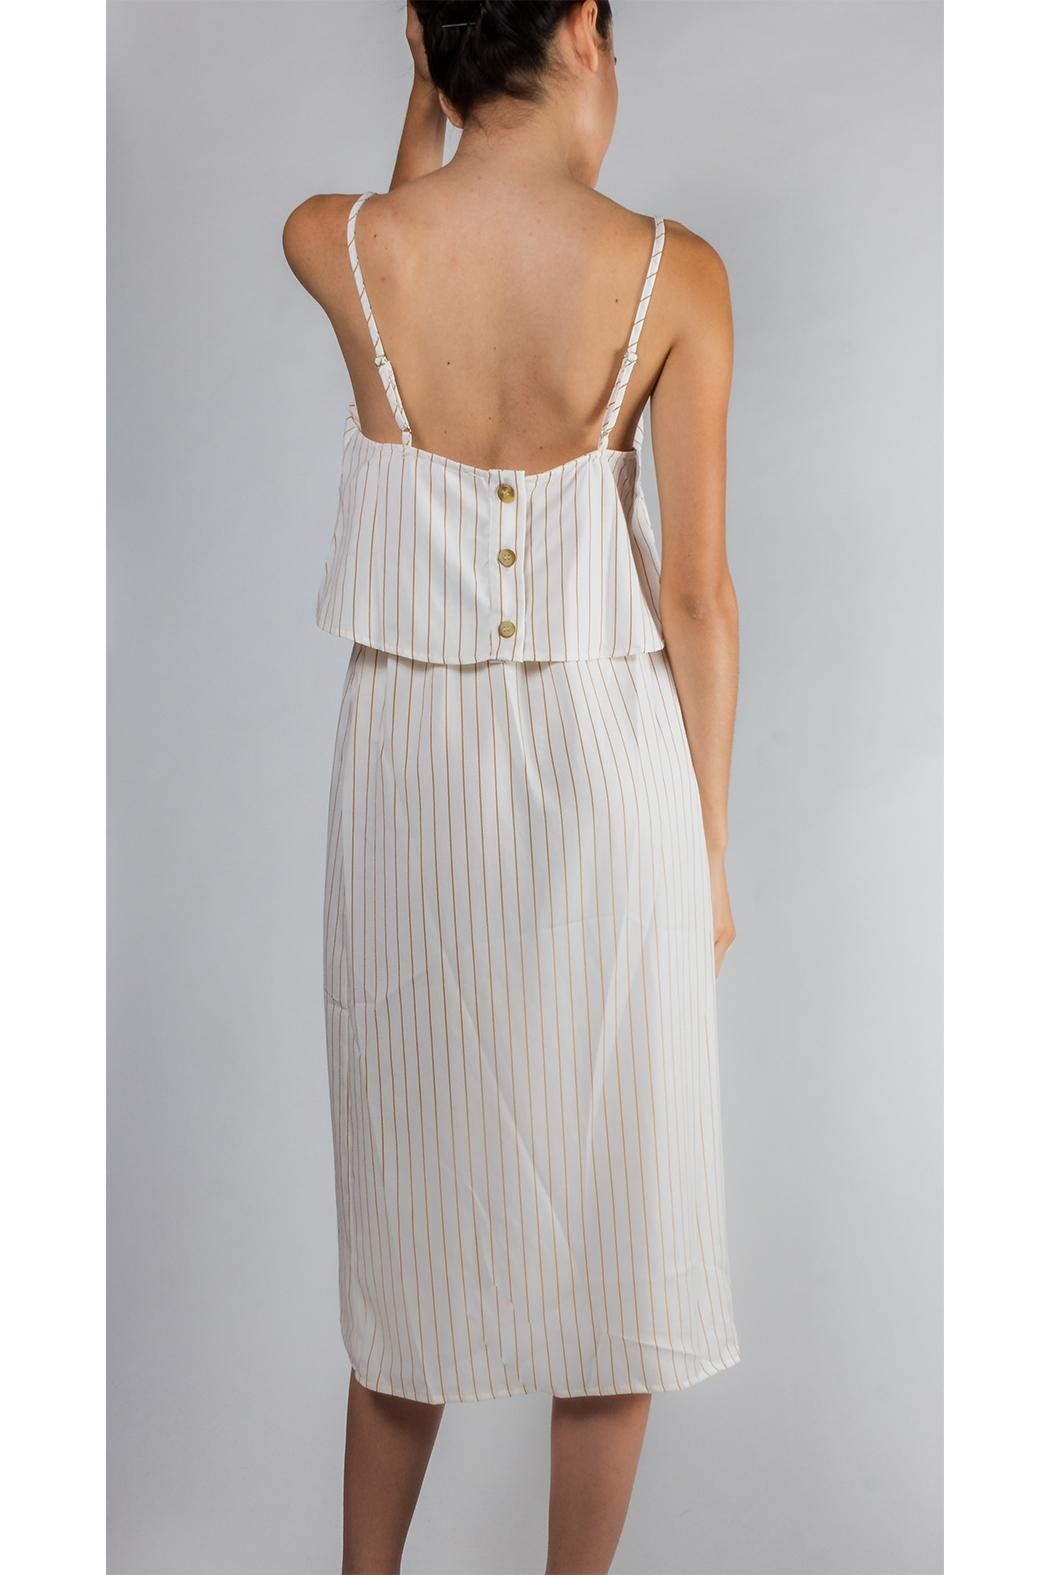 Emory Park Tiered Striped Dress - Side Cropped Image